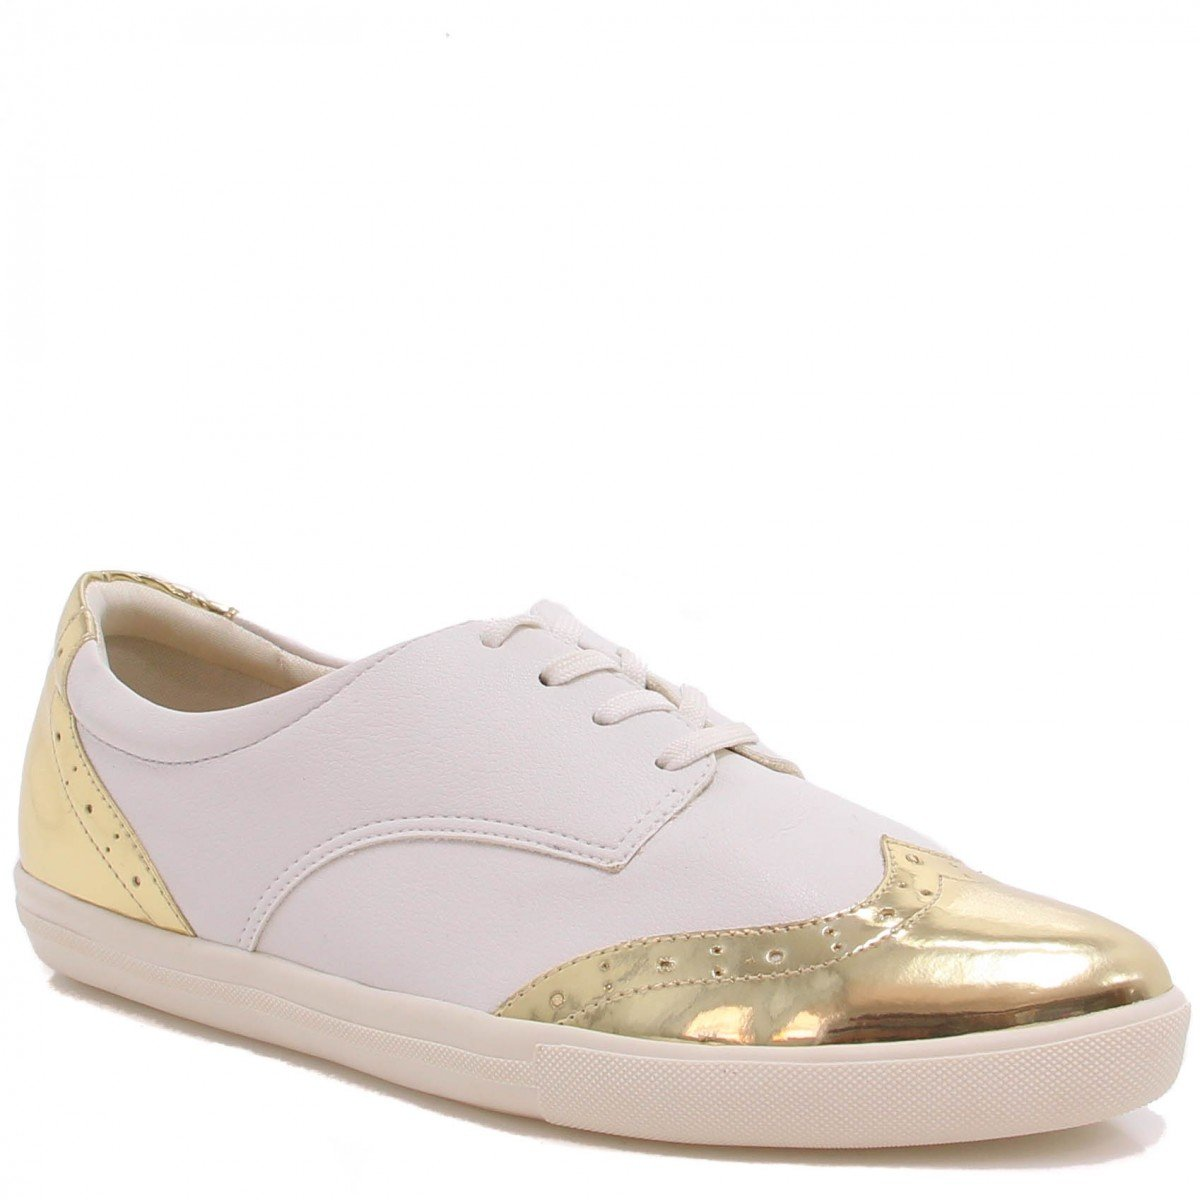 Sapato Oxford Zariff Shoes Brogue Branco